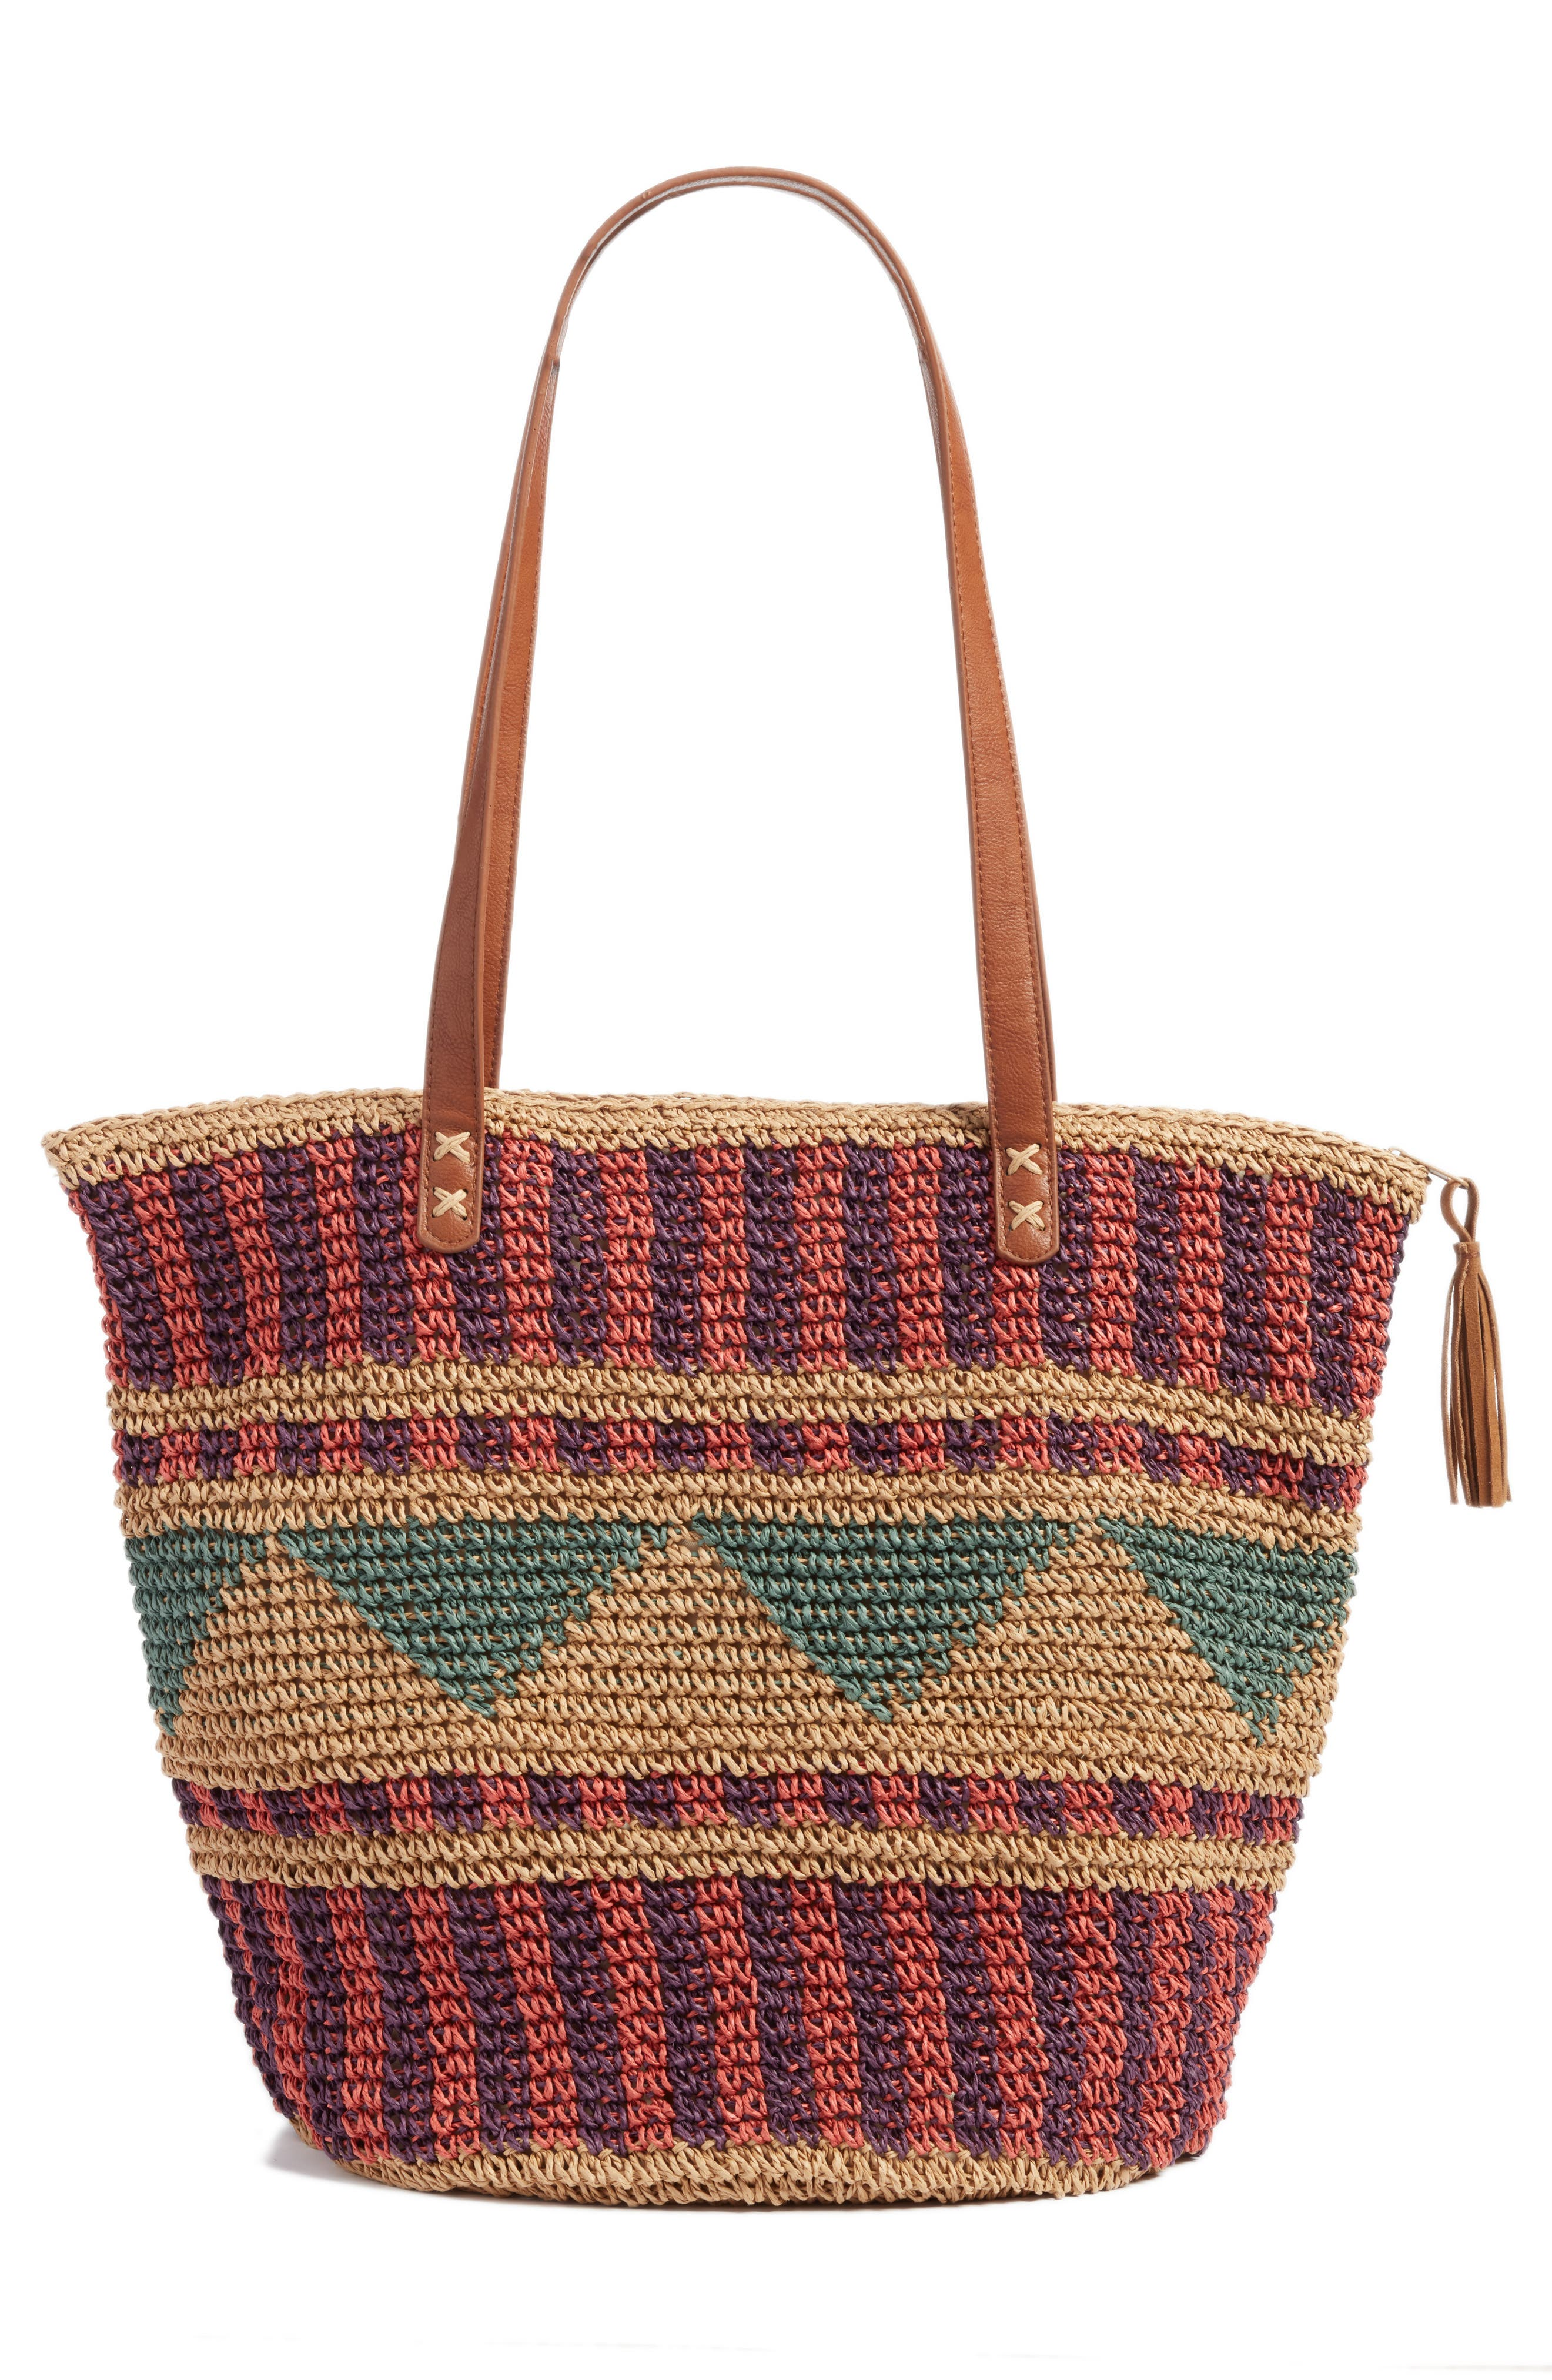 East of Dover Print Straw Tote,                             Alternate thumbnail 3, color,                             600